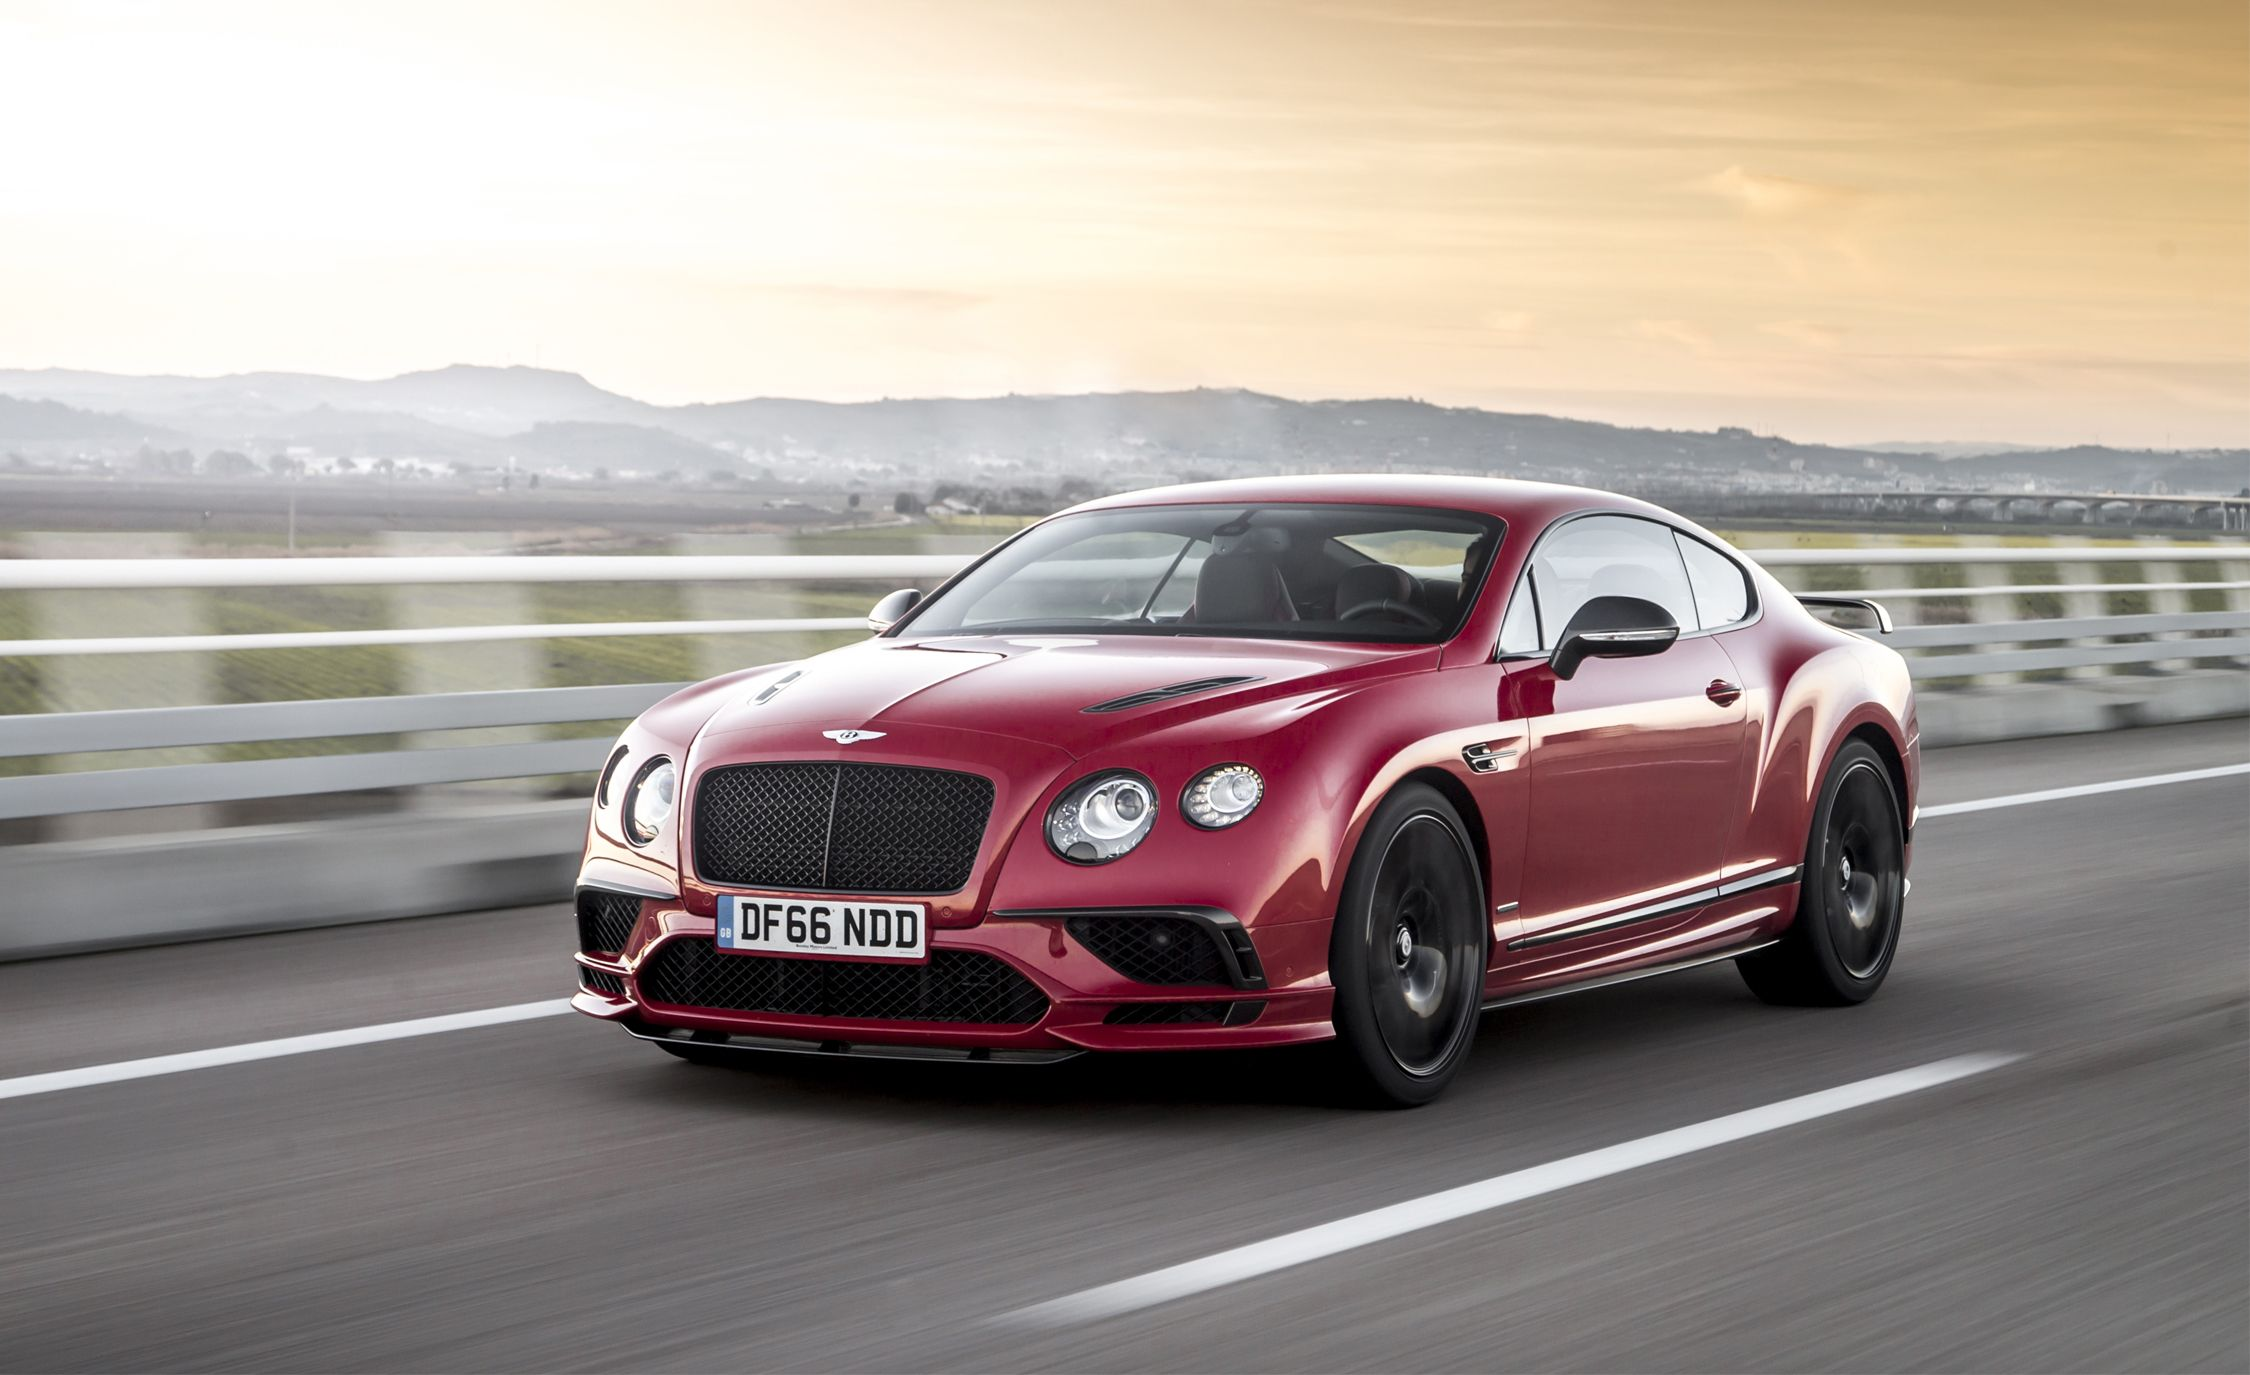 2018 bentley continental supersports first drive review car and rh caranddriver com bentley continental gtc owners manual bentley continental gt repair manual pdf